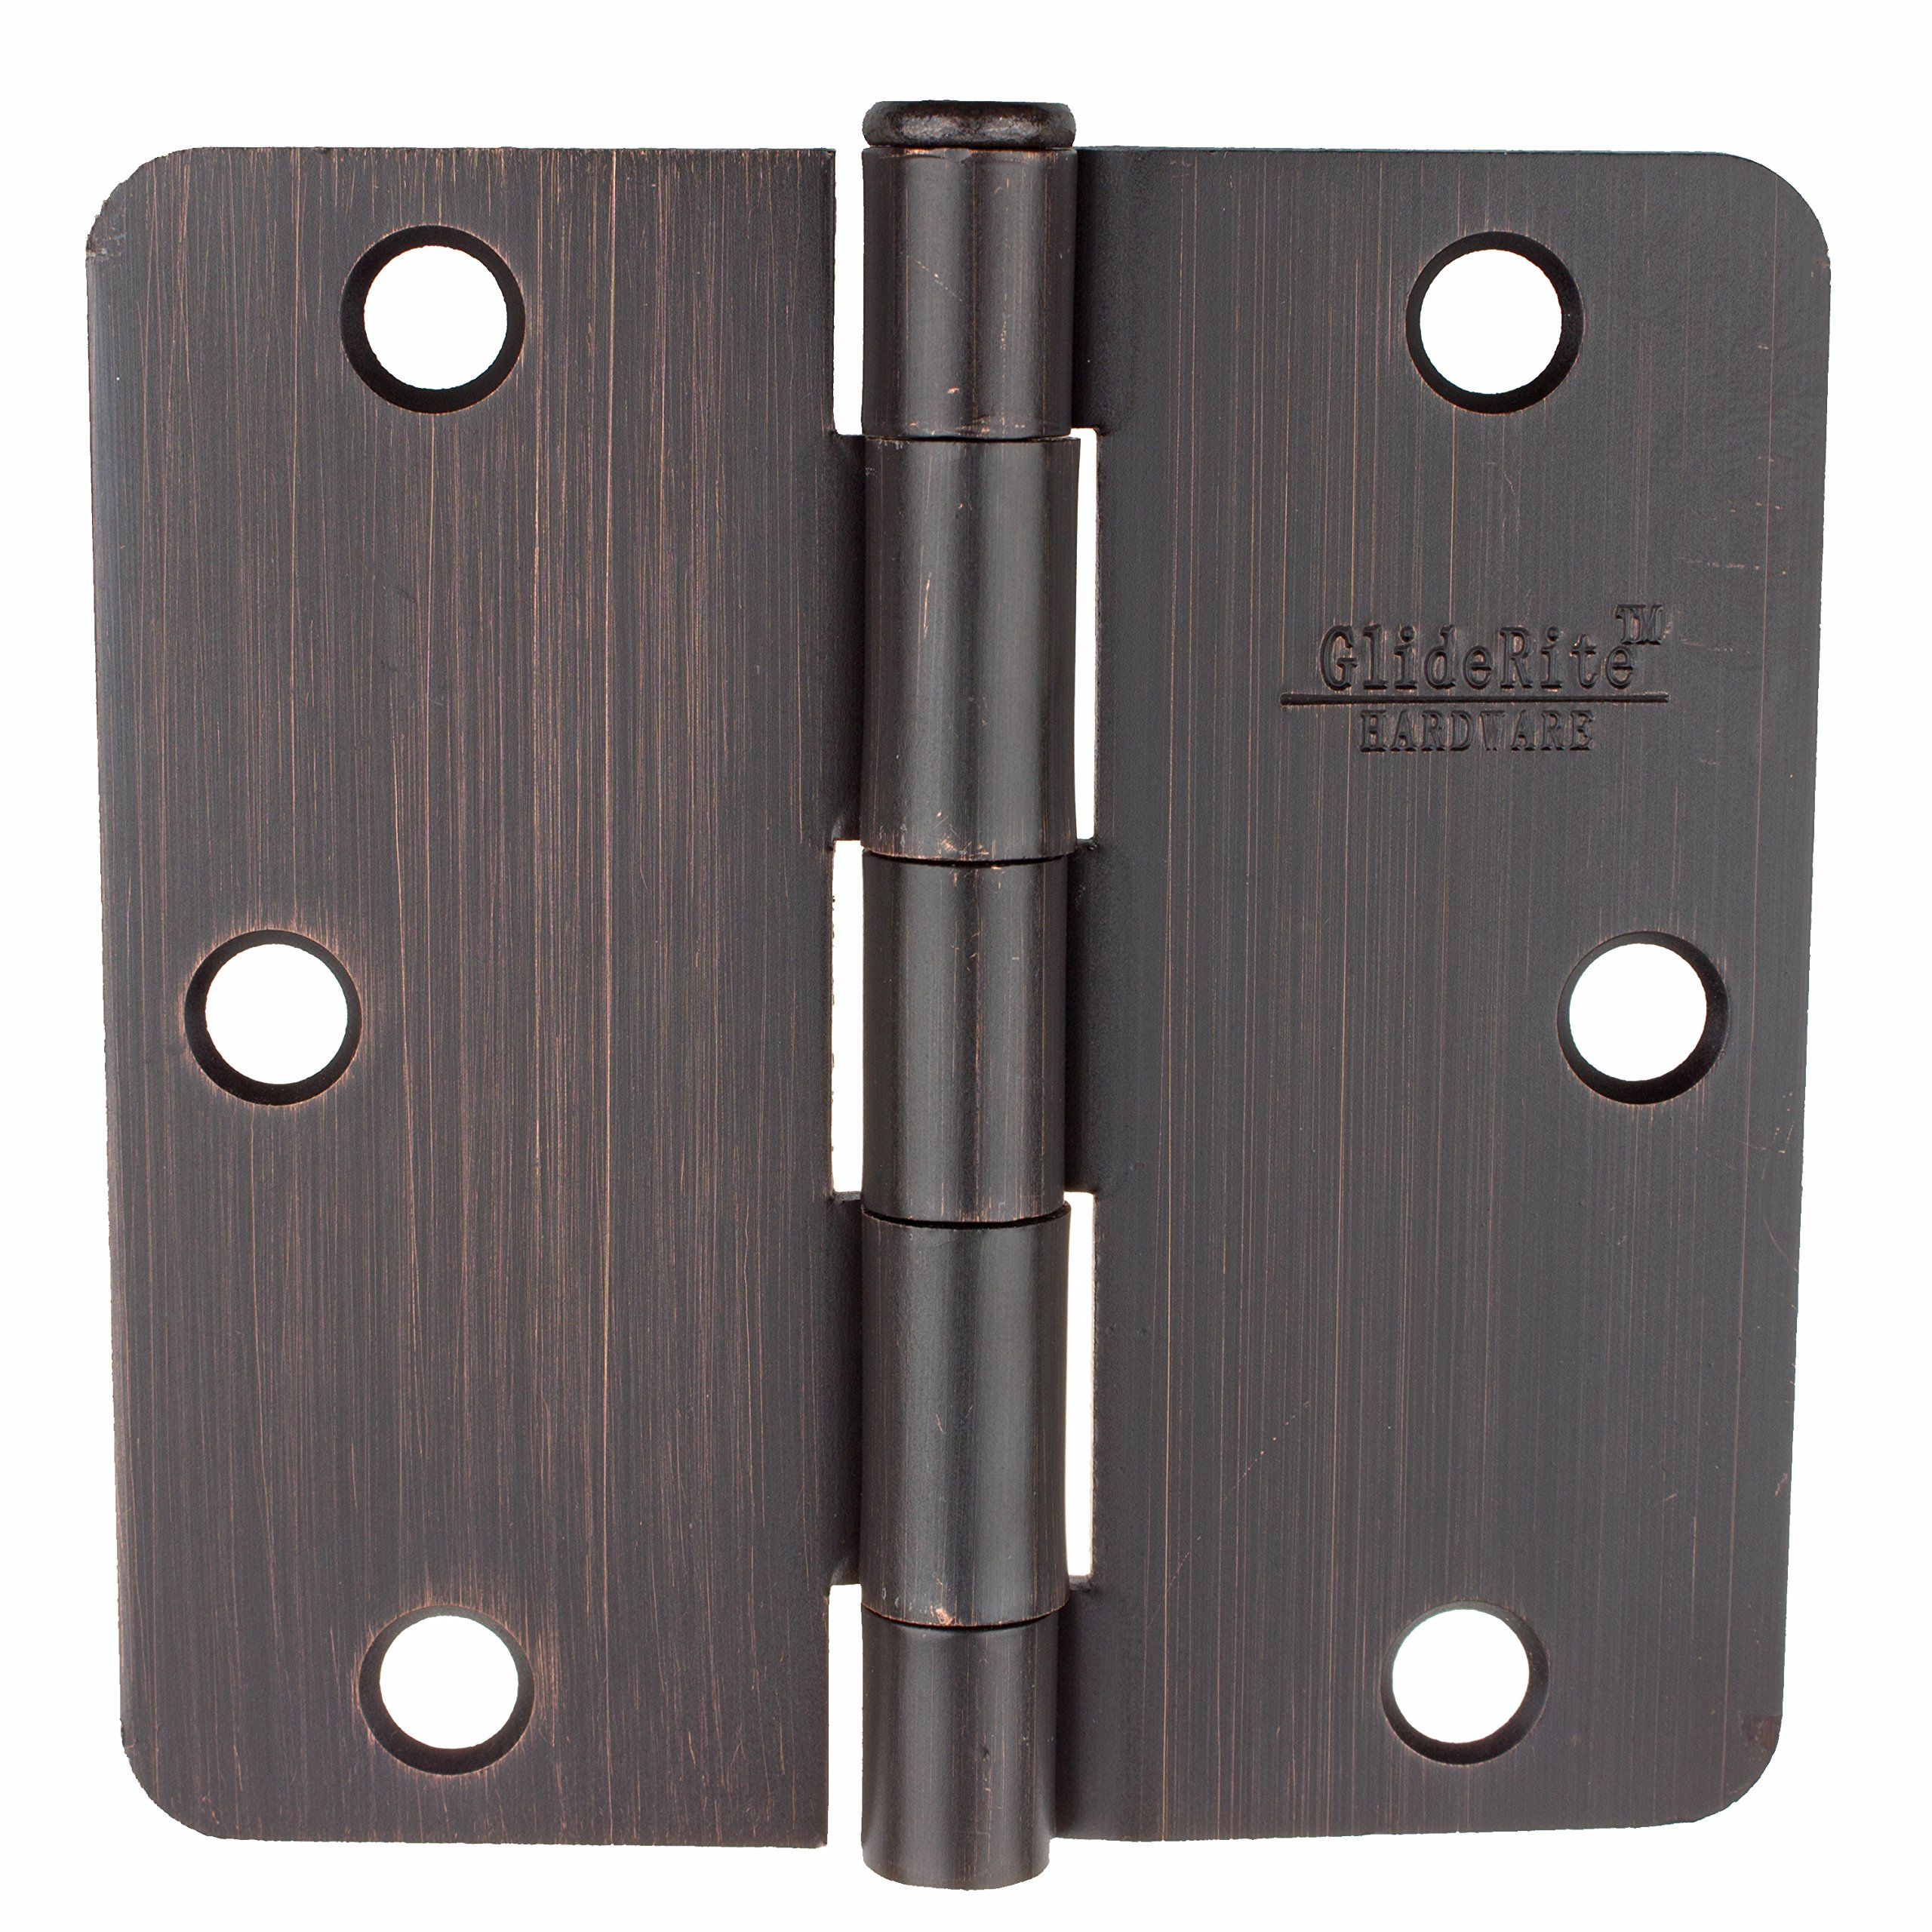 GlideRite Hardware 3514-ORB-100 3.5 inch steel Door Hinges 0.25 inch Radius Oil Rubbed Bronze Finish 100 Pack by GlideRite Hardware